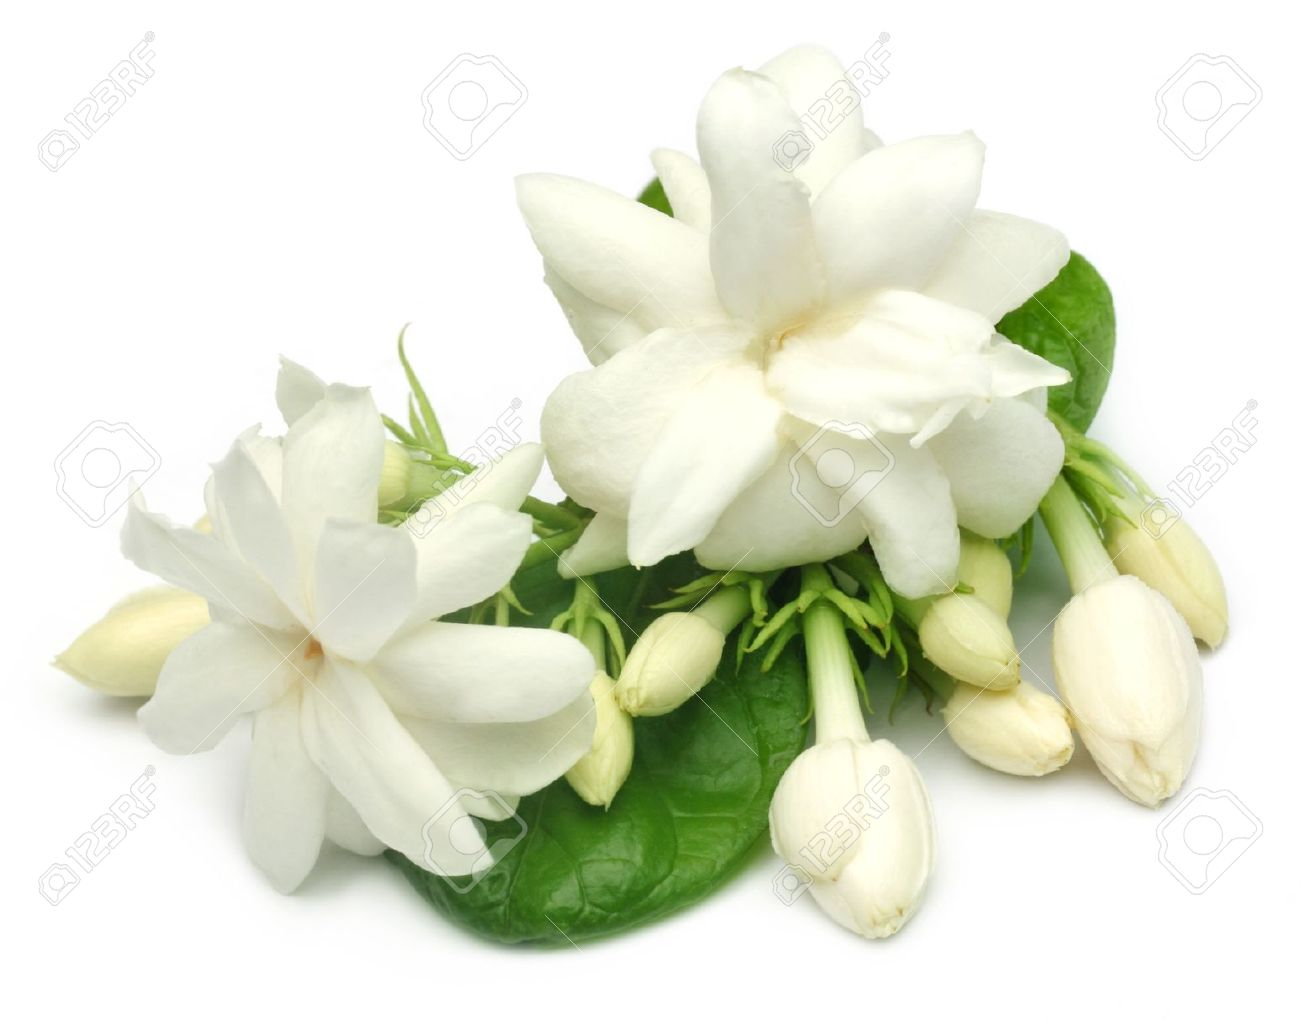 Jasmine Flower With Leaves Stock Photo Picture And Royalty Free